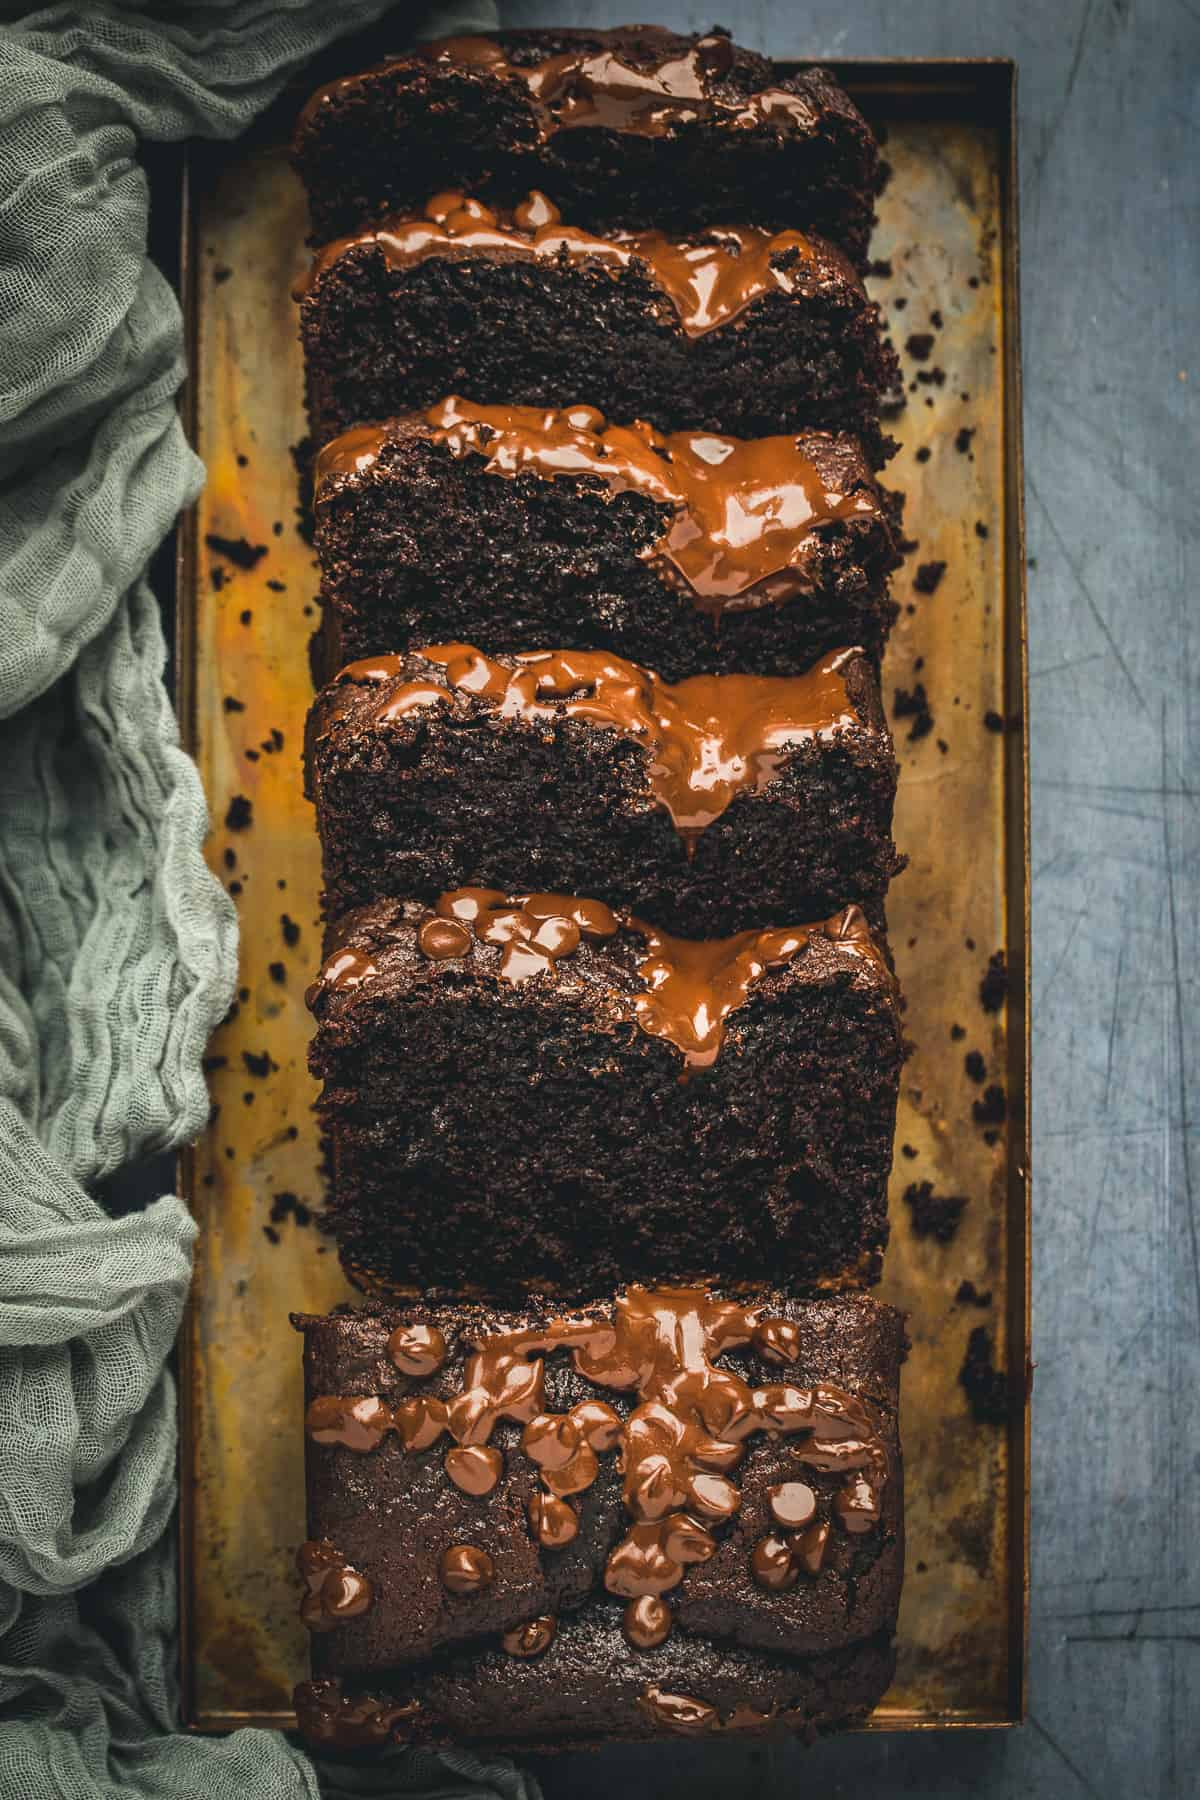 A moist and fudgy chocolate loaf cake that has five large slices cut out of it.